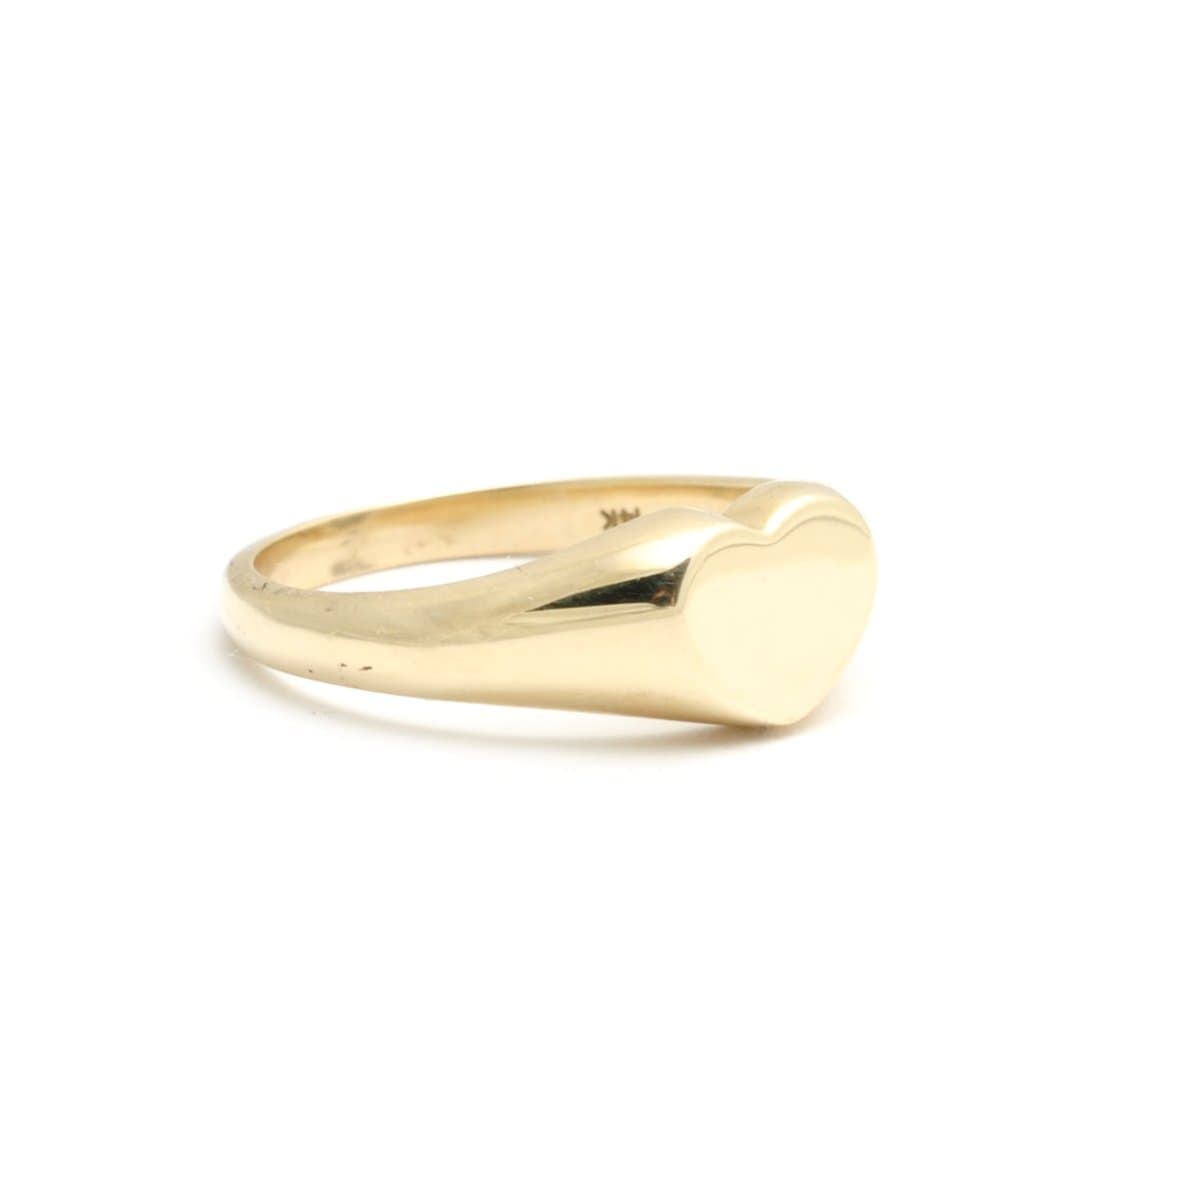 Medium Heart Signet Ring Yellow Gold